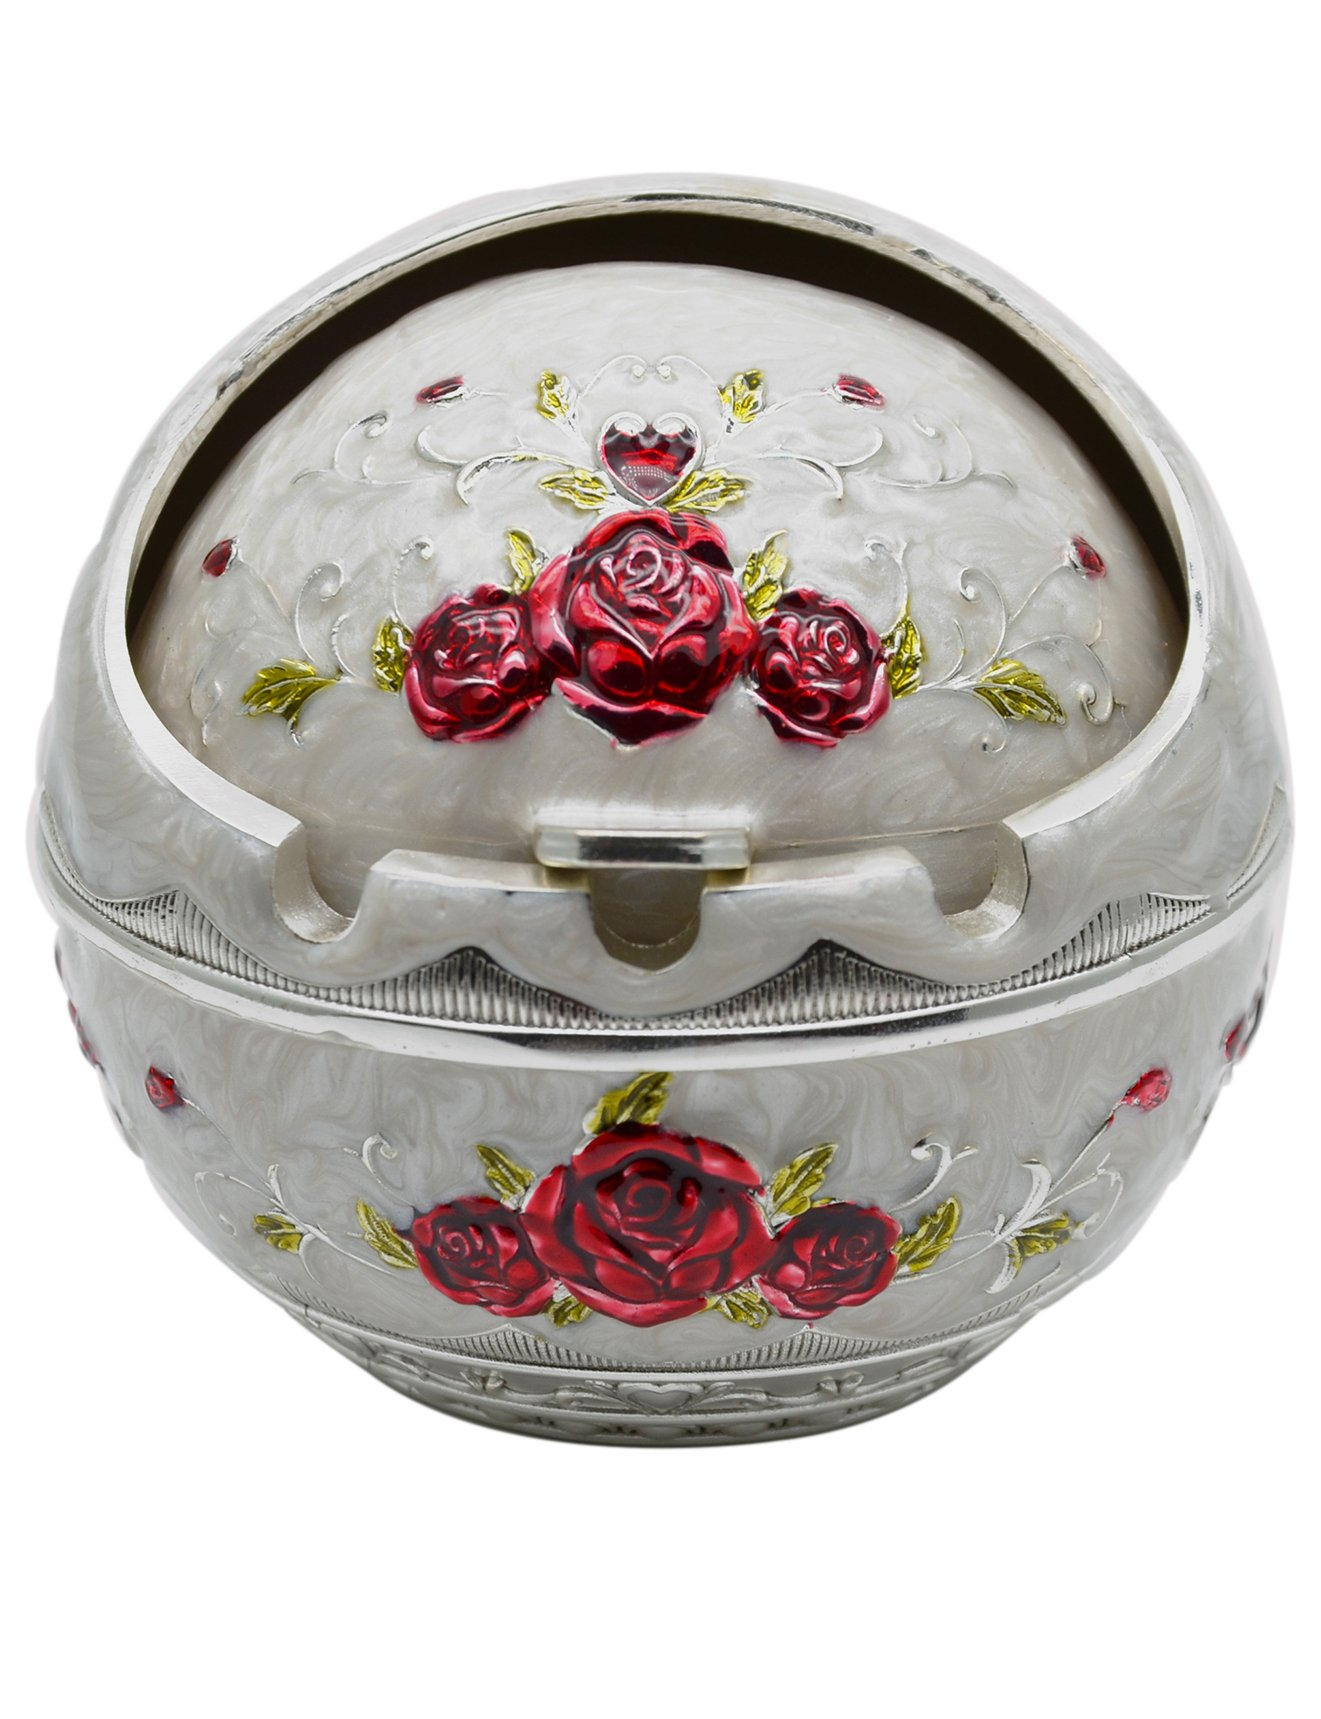 TOWOMO Vintage Cigar Ashtray with Lid, Red Rose Pattern-White